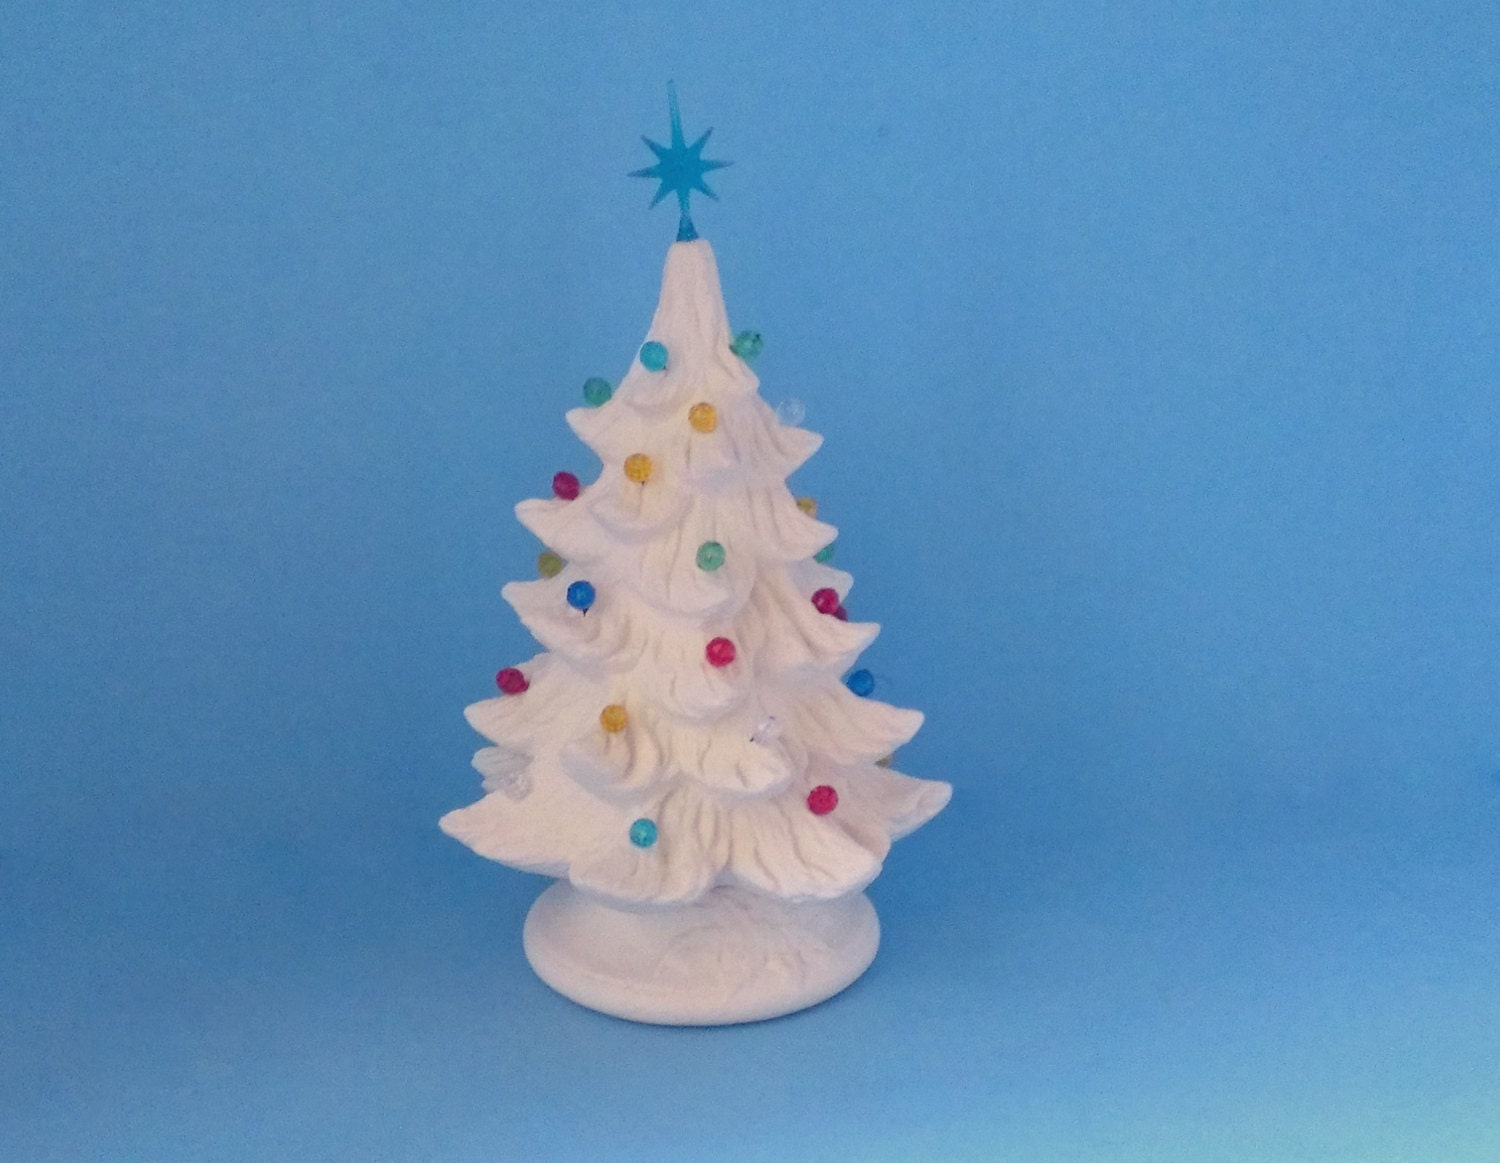 Small Ready To Paint Ceramic Christmas Tree 7 Inches With